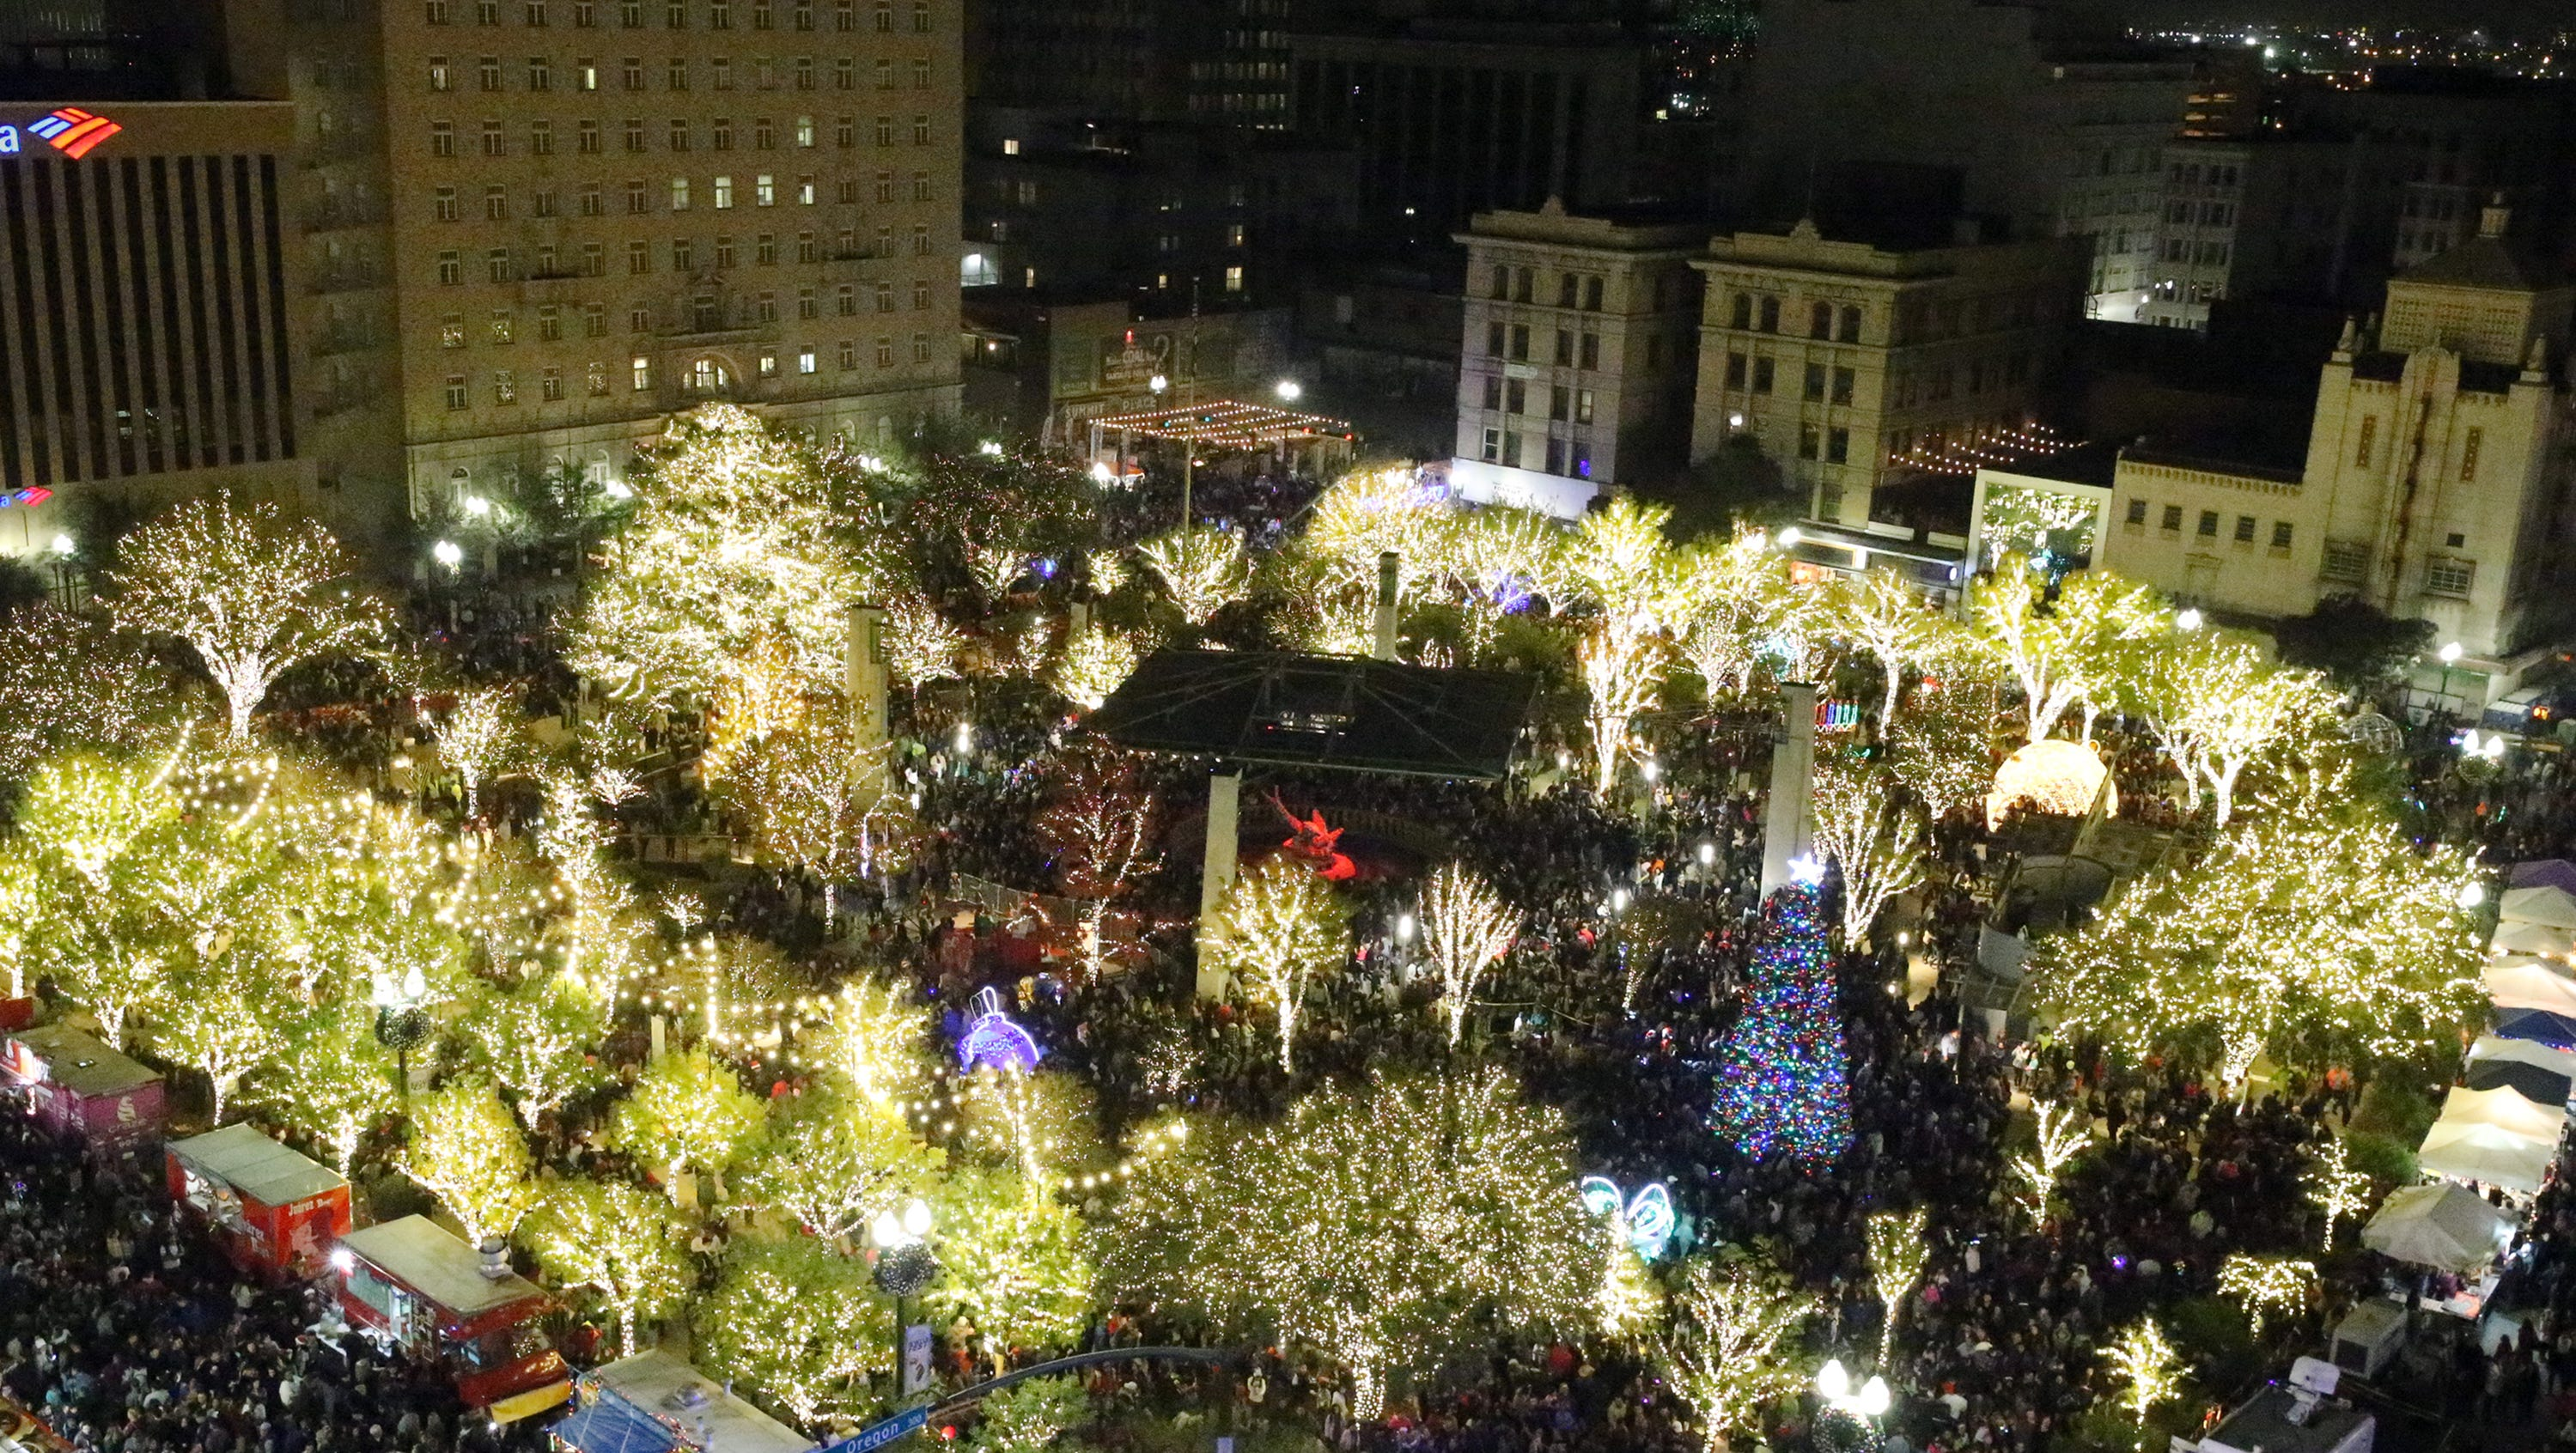 Holiday season: Here are destinations to see El Paso Christmas lights